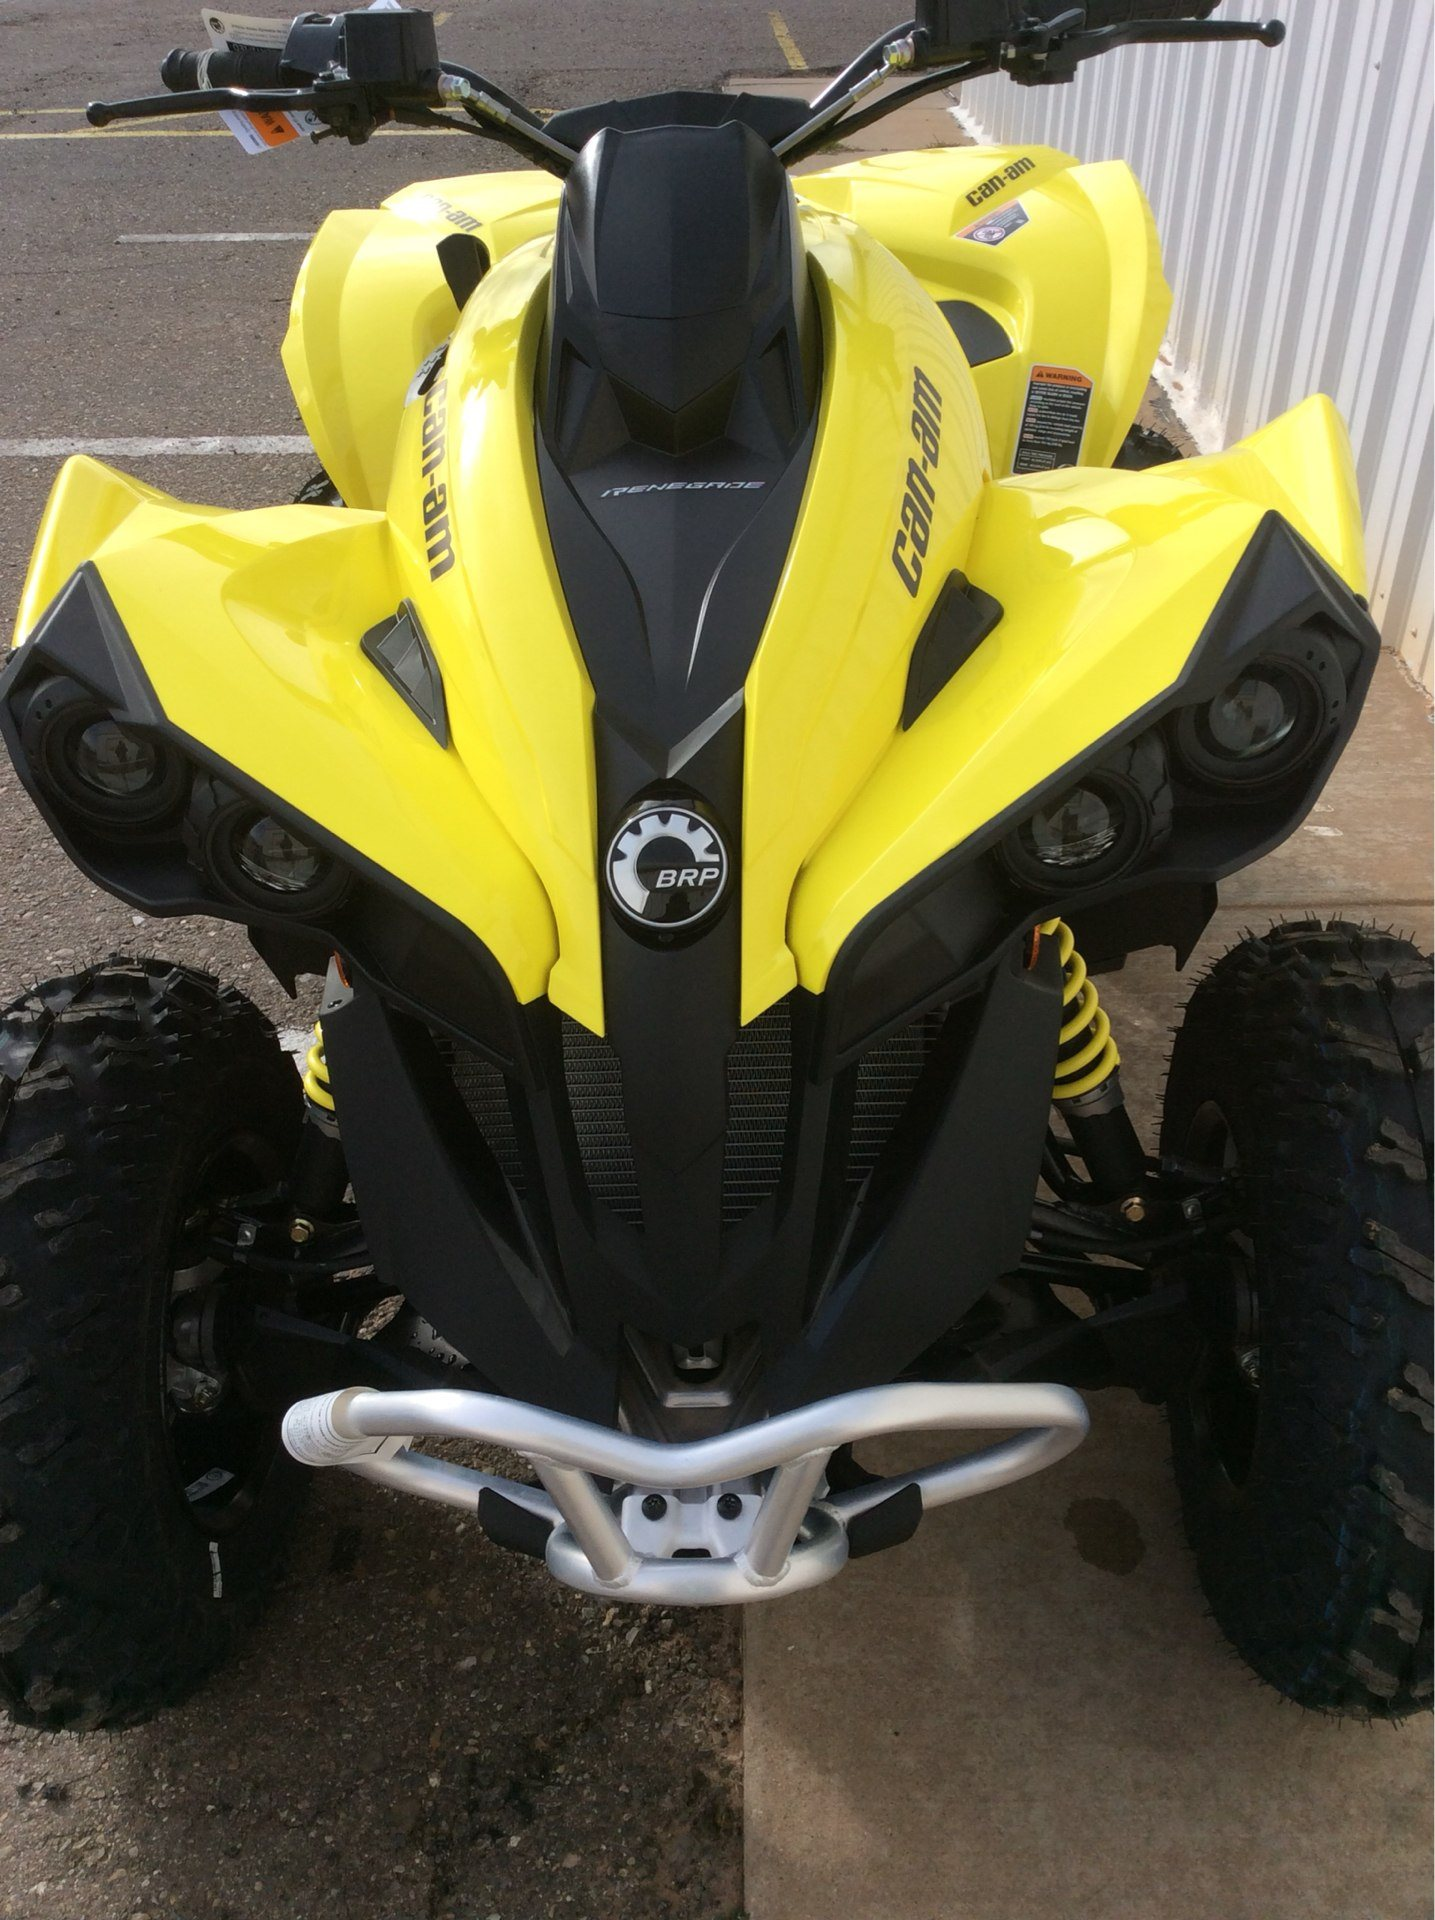 2019 Can-Am Renegade 570 in Clovis, New Mexico - Photo 6